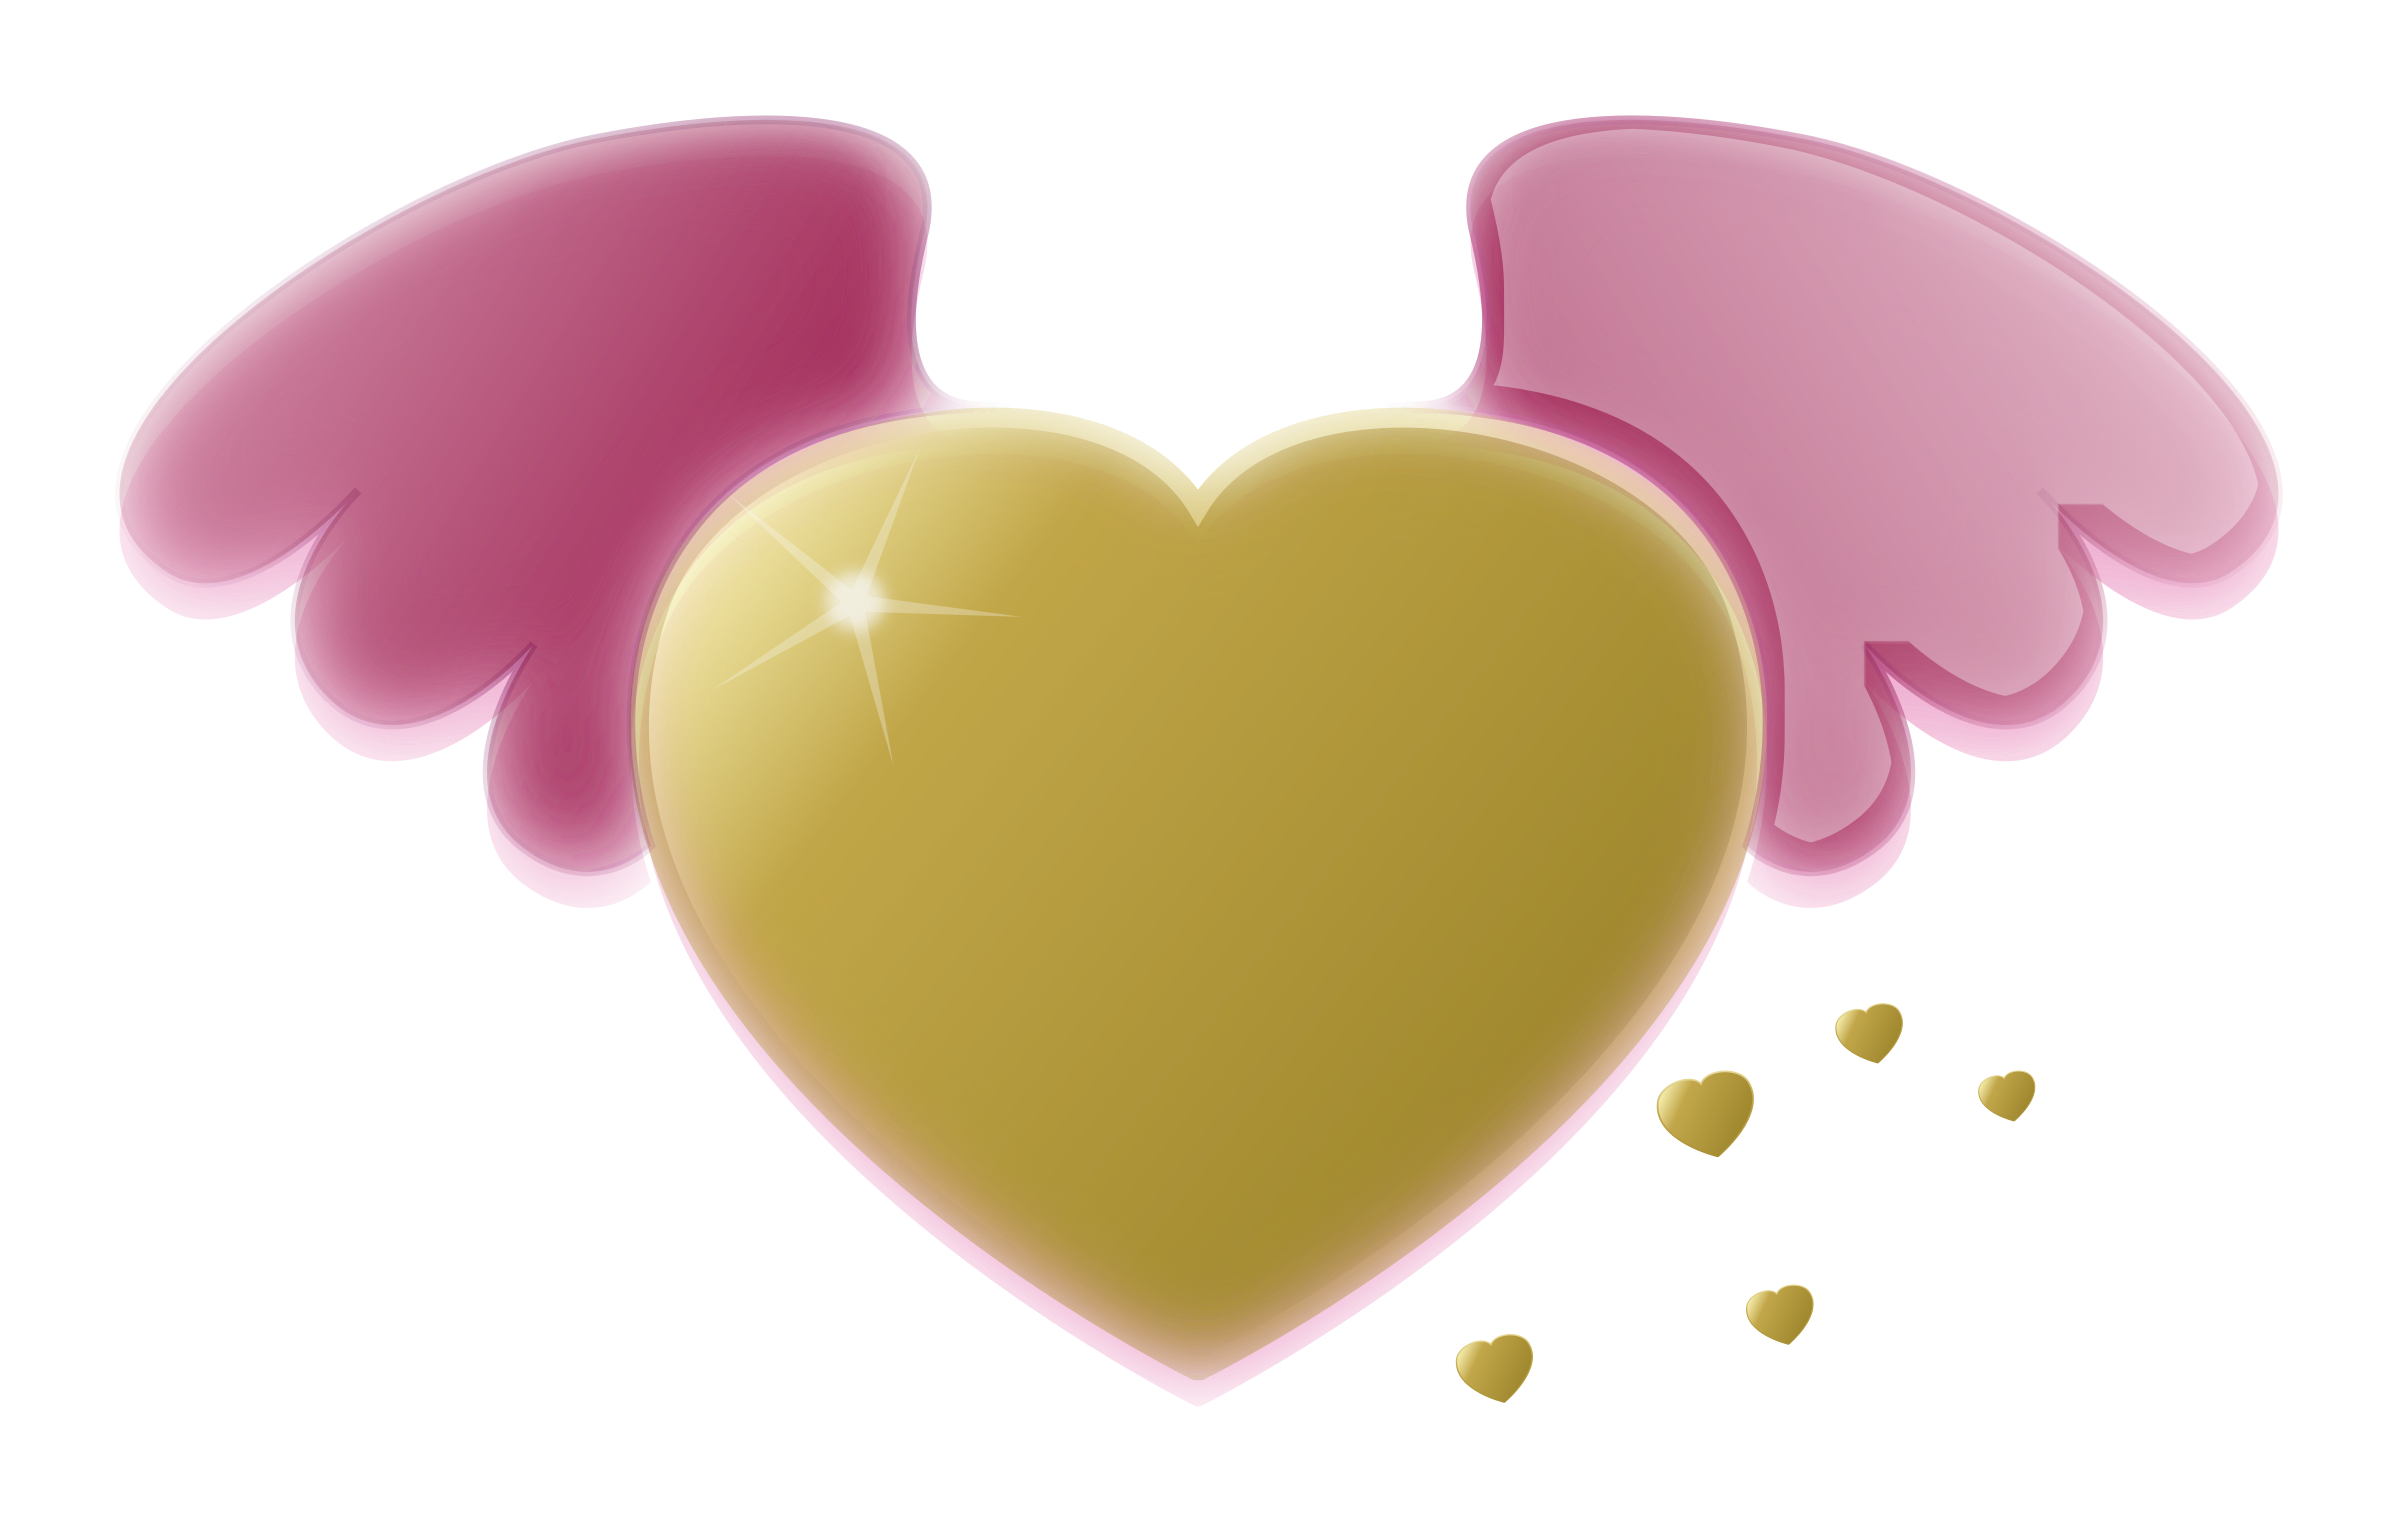 Gold heart with wings. Wing clipart pink